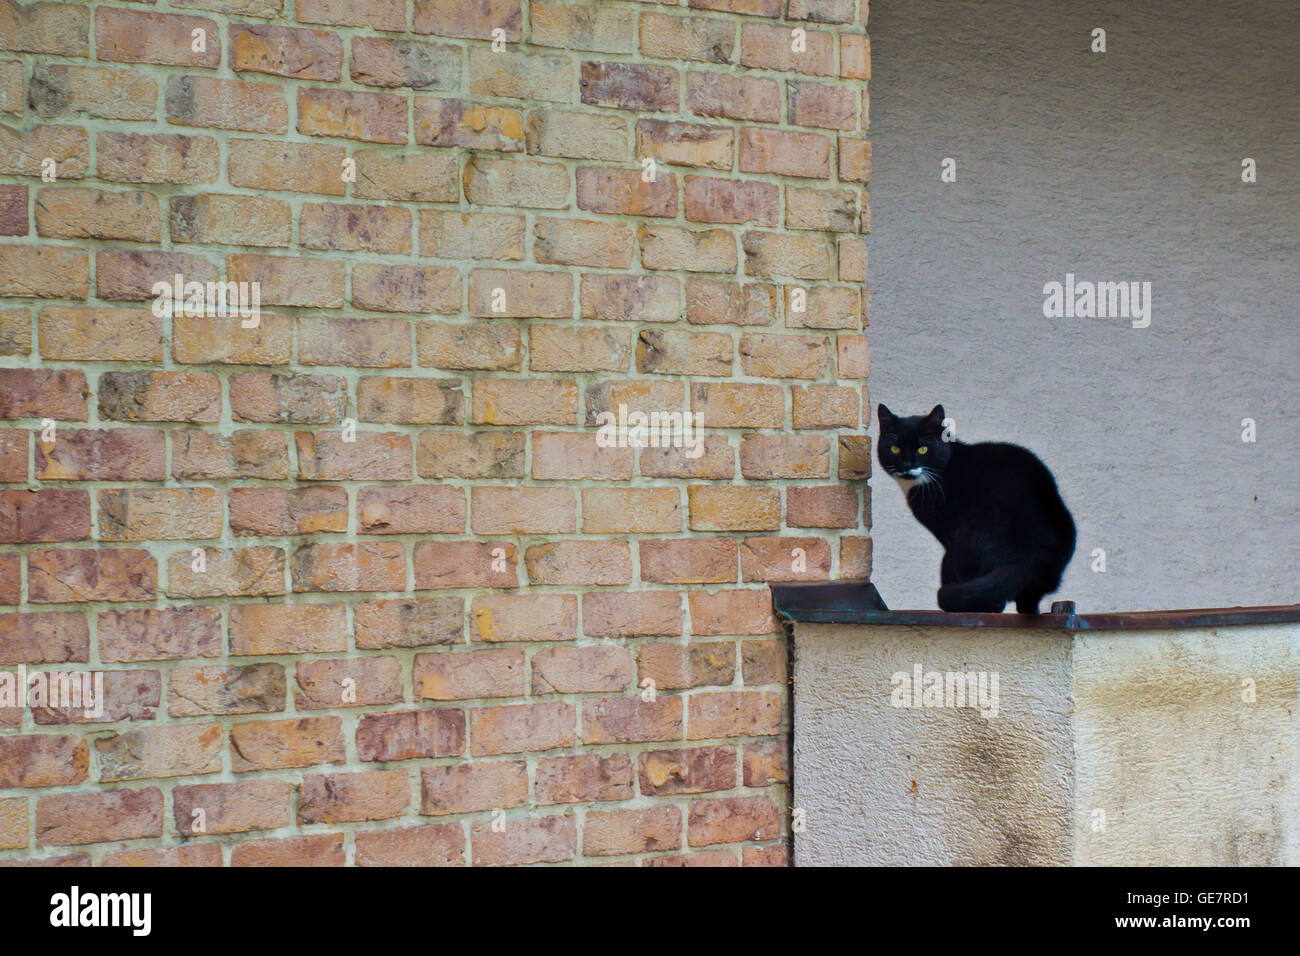 Bicolor cat sitting on a wall outdoor Stock Photo